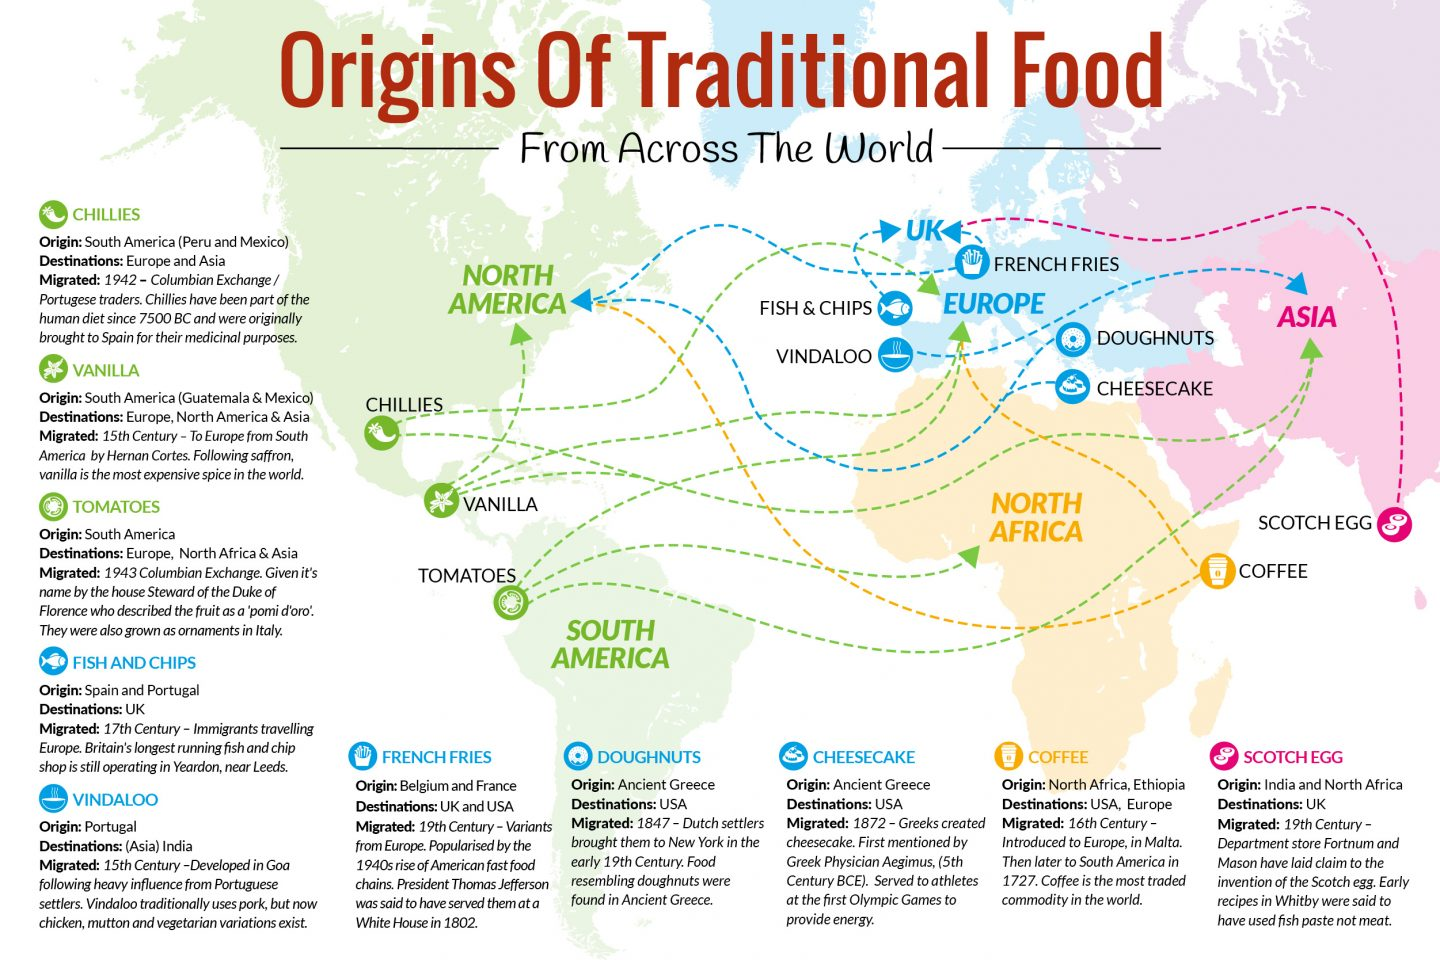 The Origins of Traditional Food: Discover Where Your Favourite Traditional Foods Come From #foodorigins #worldfood #traditionalfood